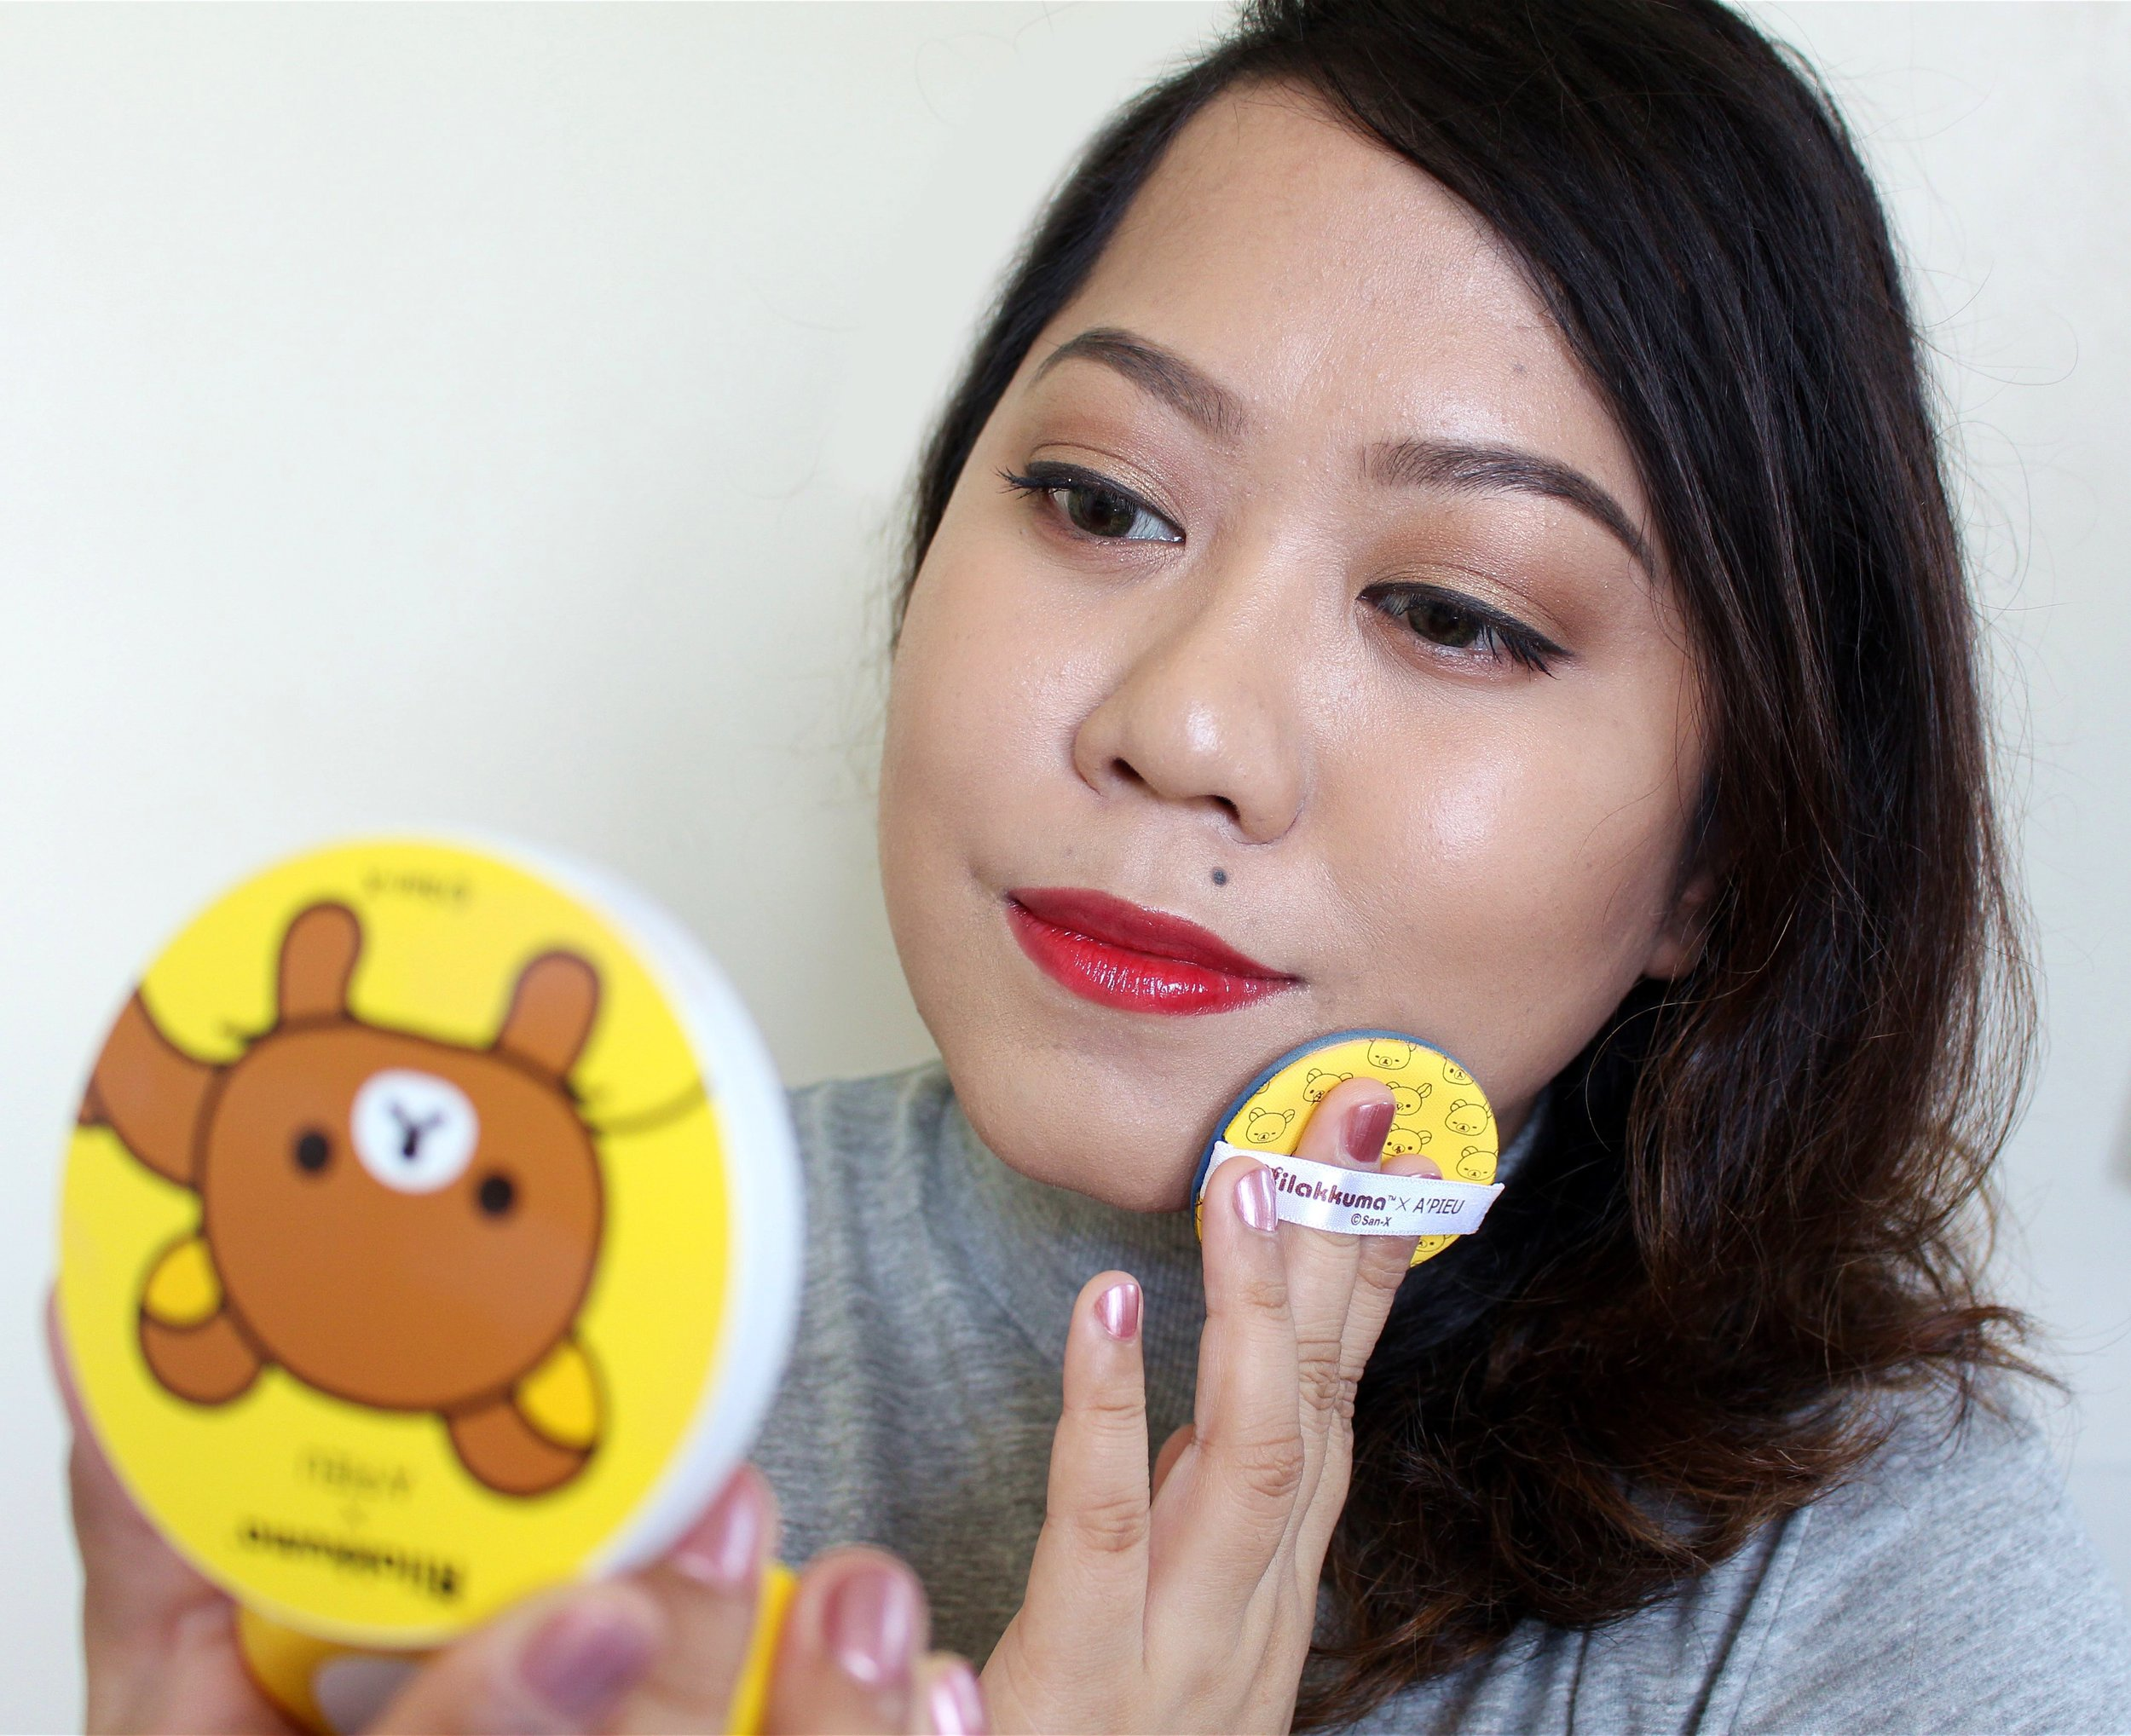 It's shallow but I feel kilig whenever I use the products. They're just too cute!